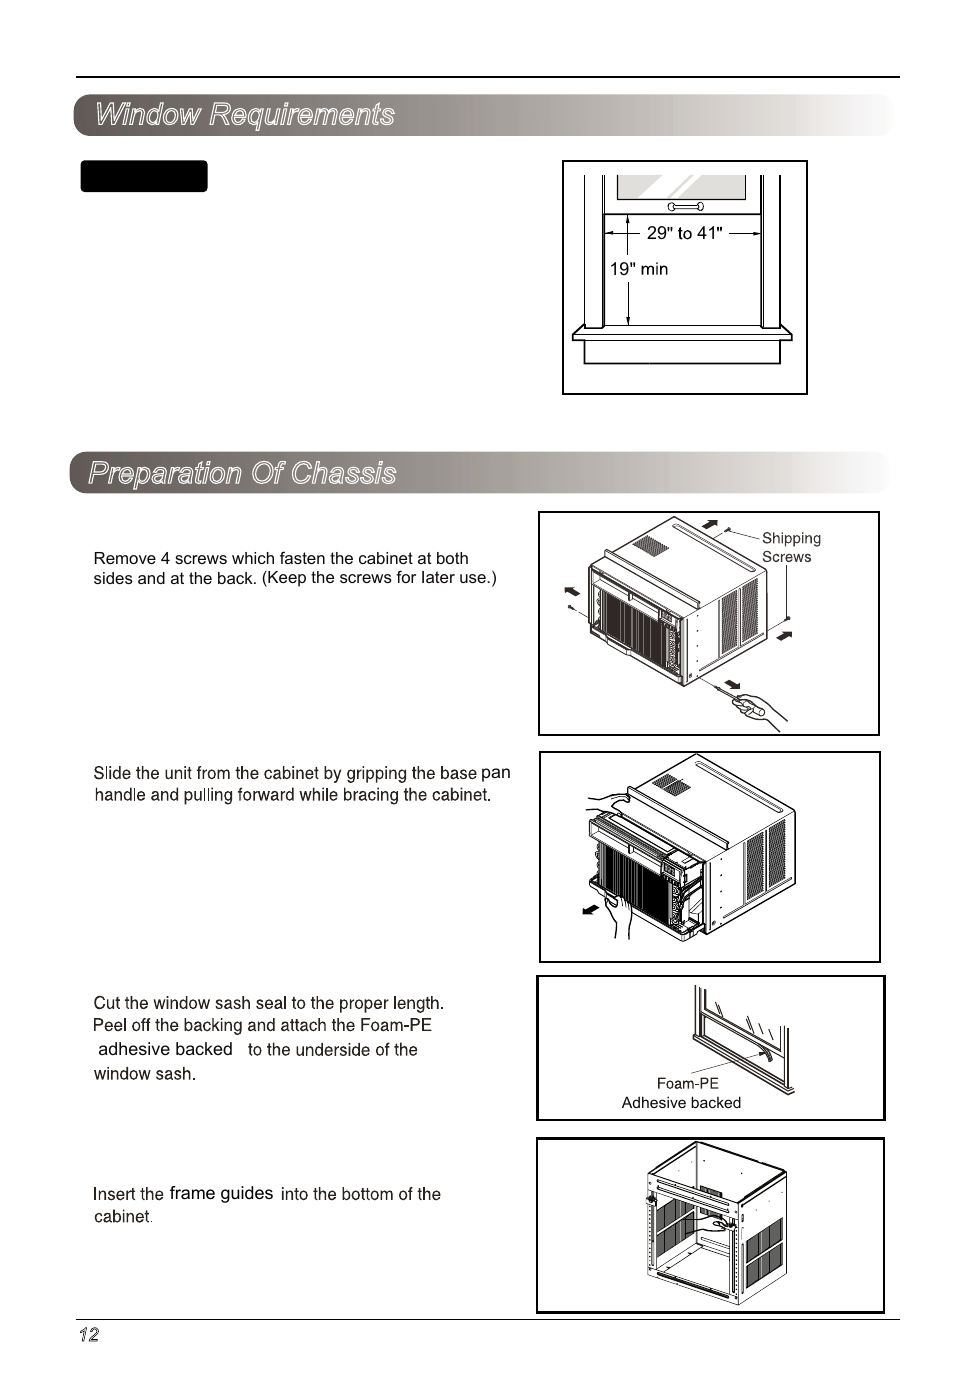 Preparation Of Chassis Window Requirements Notice Lg Lw2513er Room Air Conditioner Wiring Diagram User Manual Page 12 48